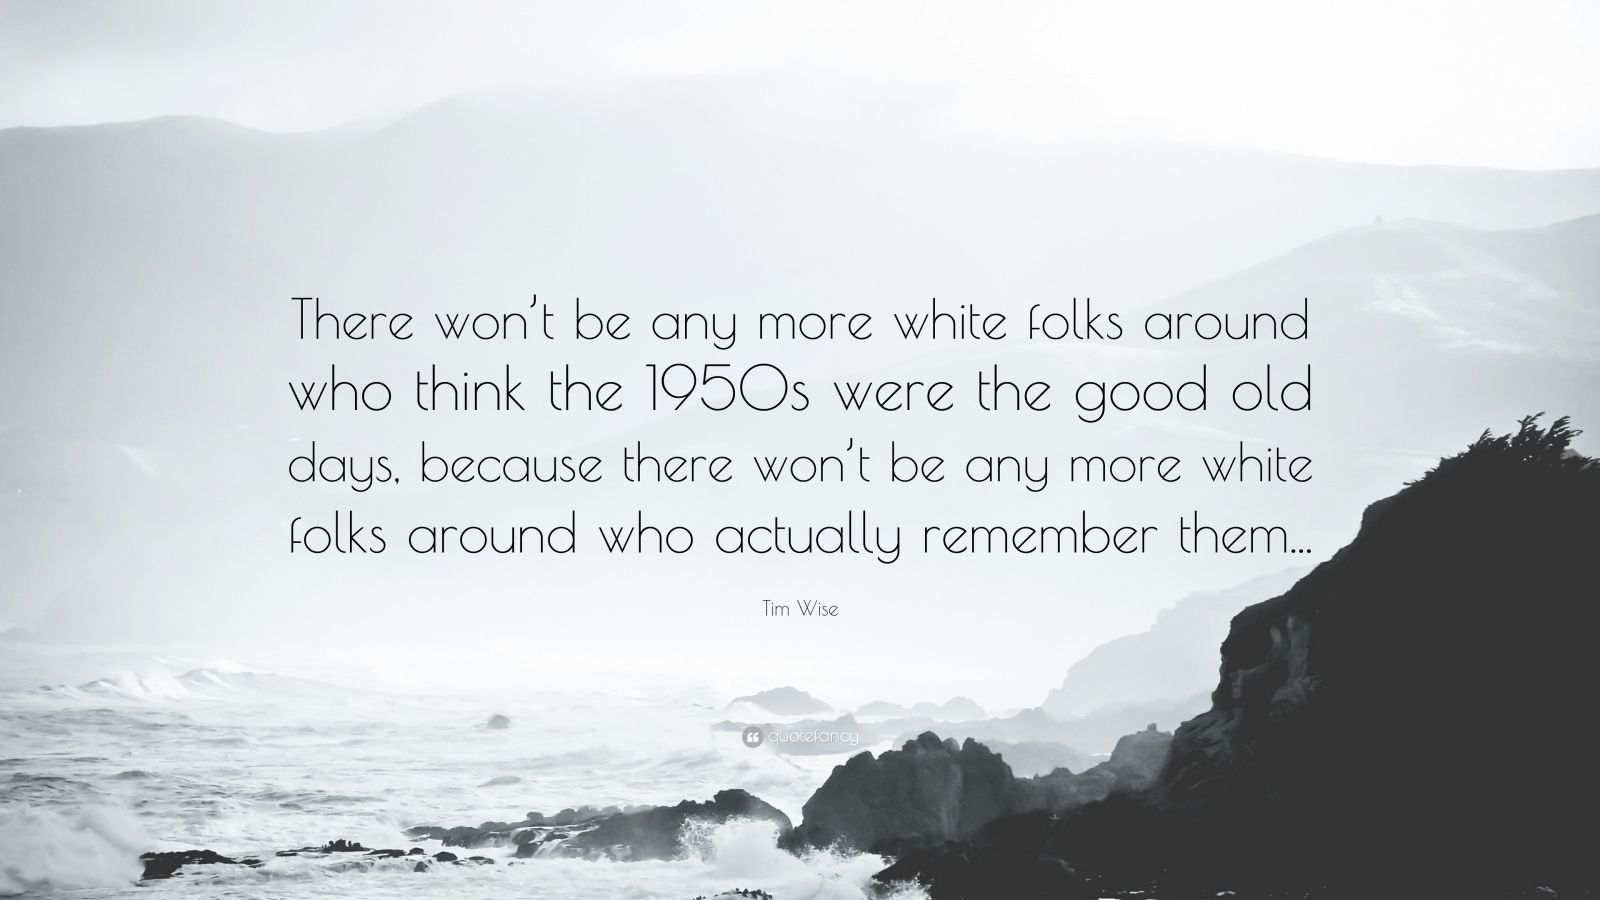 """Tim Wise Quote: """"There won't be any more white folks around who think the 1950s were the good old days, because there won't be any more white folks around who actually remember them..."""""""